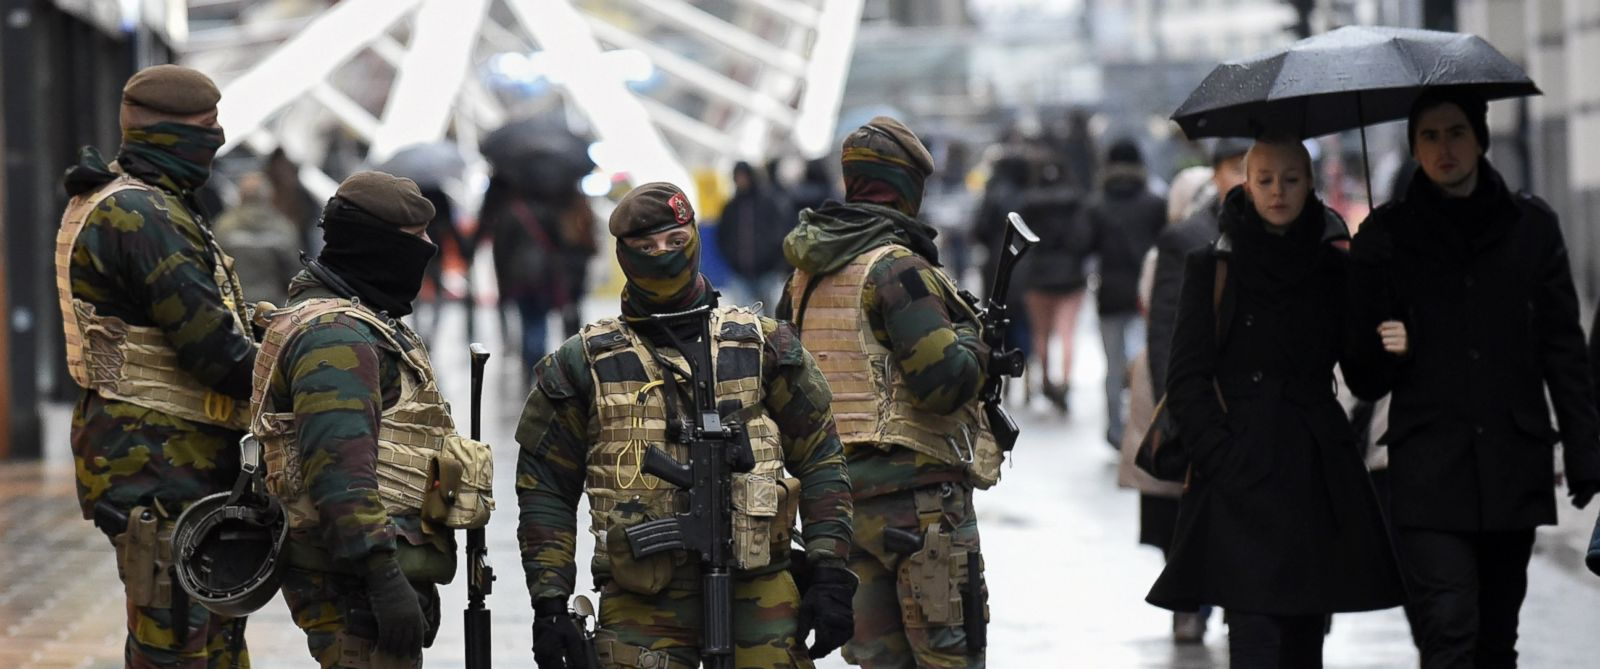 PHOTO: Soldiers patrol the Rue Neuve pedestrian shopping street in Brussels on November 21, 2015.